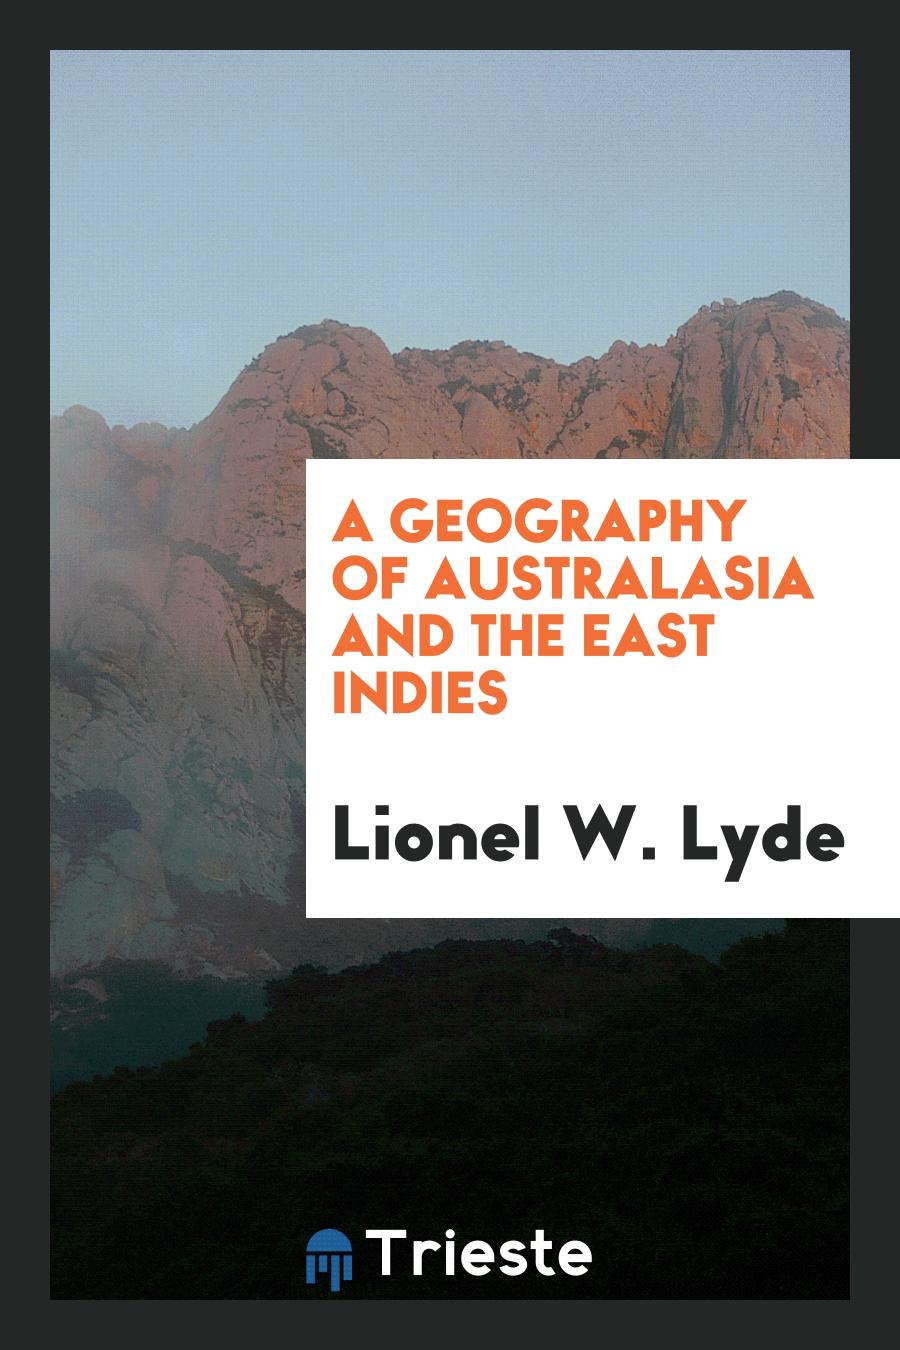 A Geography of Australasia and the East Indies